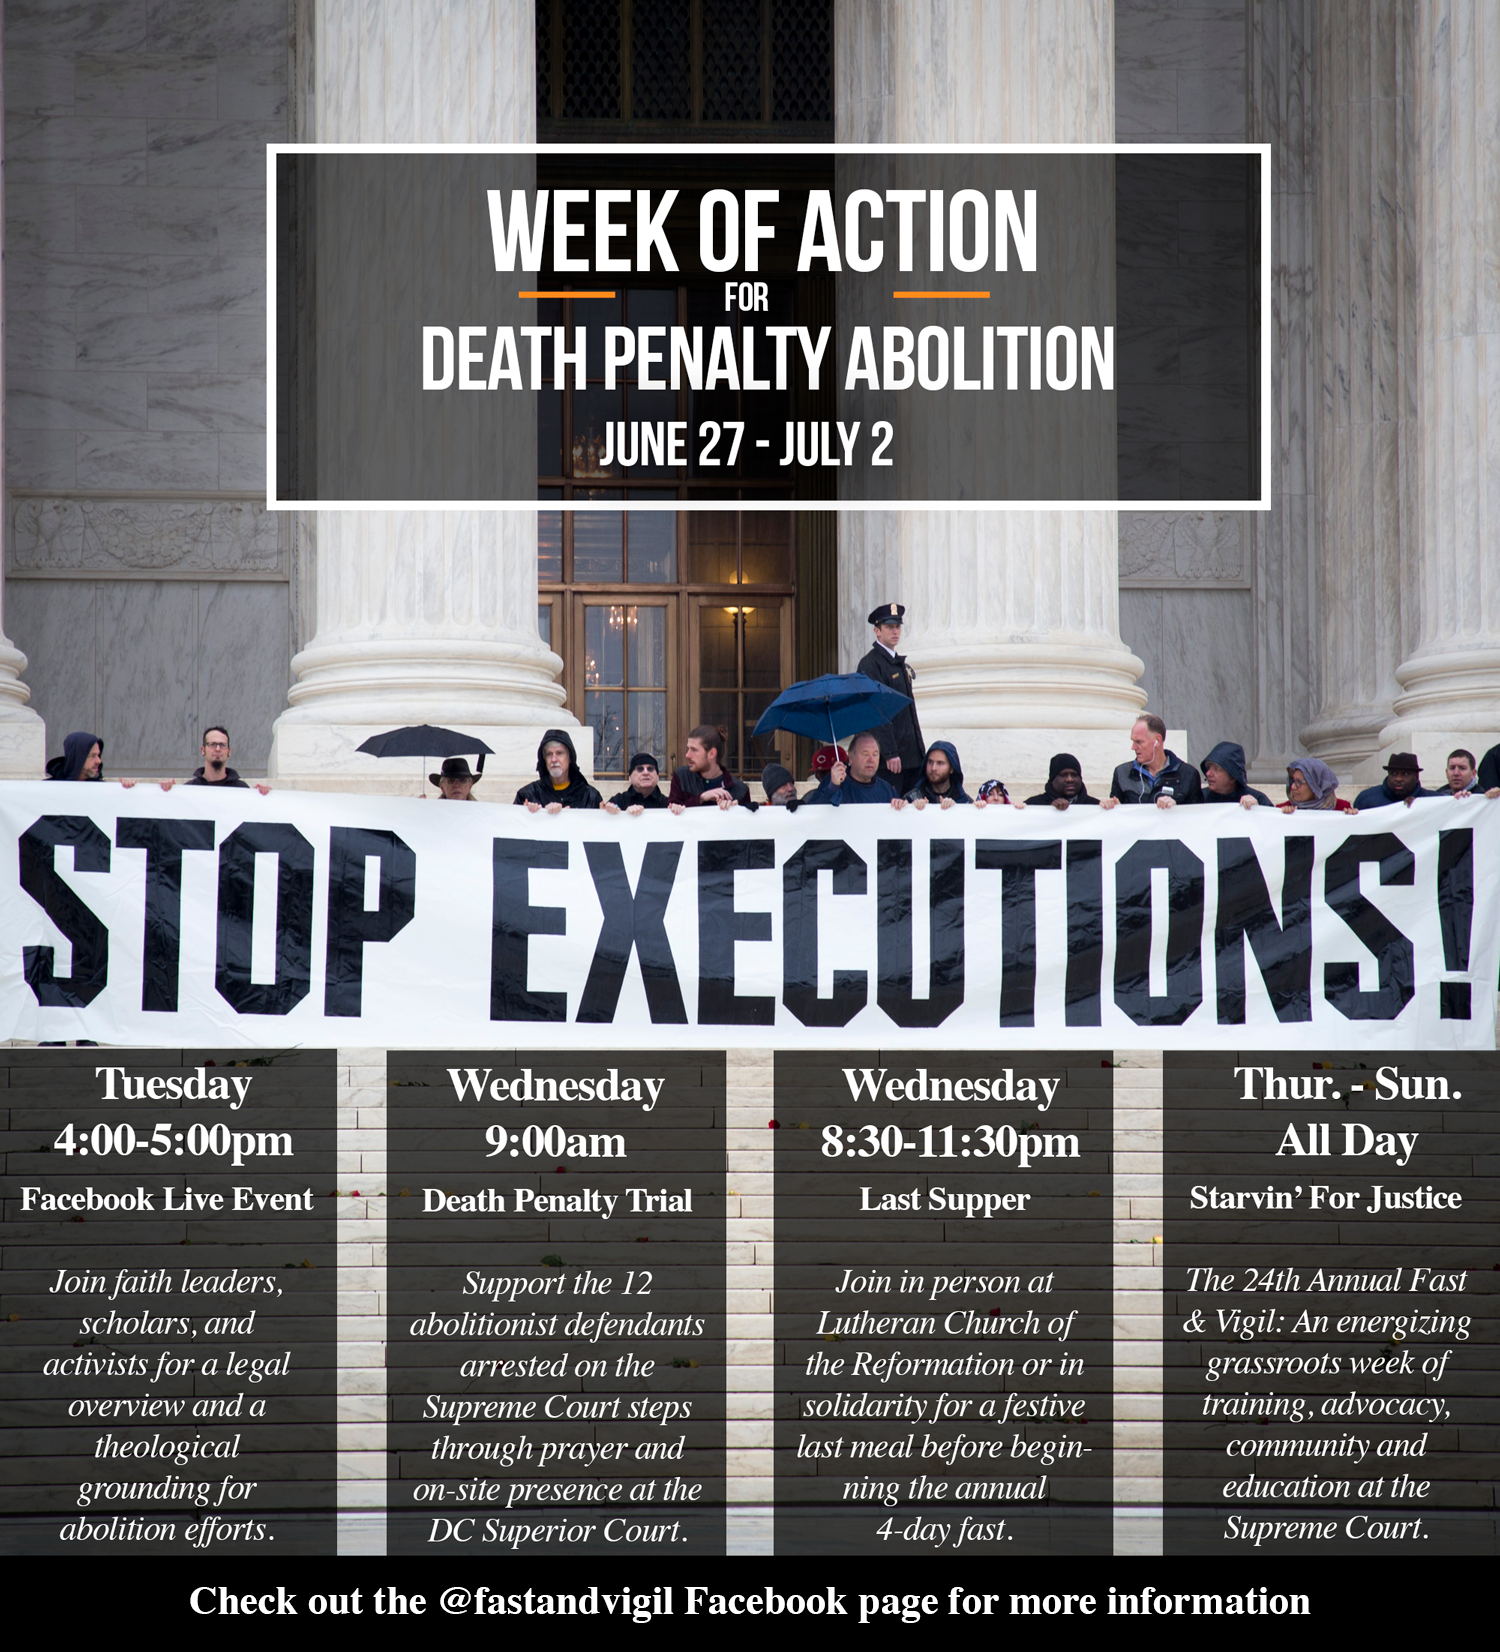 How to Take Action to Abolish the Death Penalty